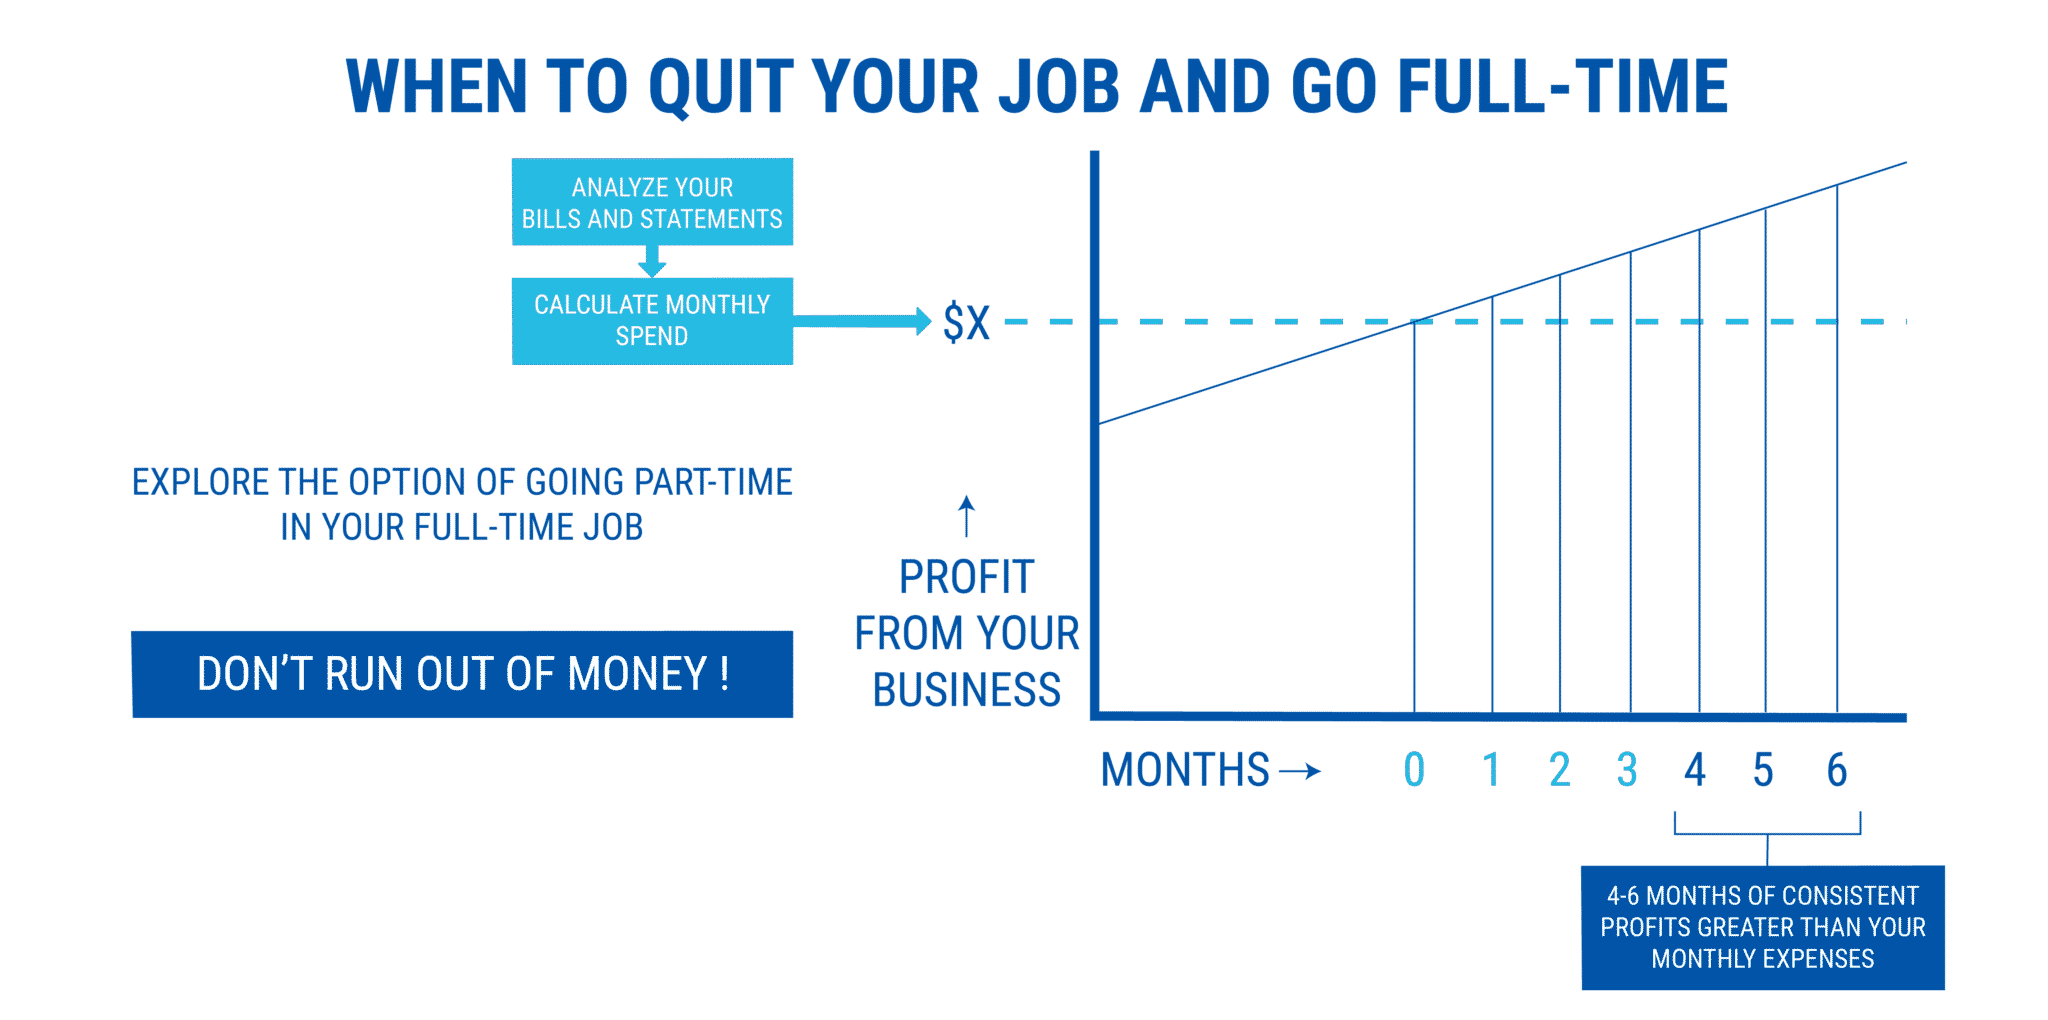 when to quit your job and go full-time - staring a coaching business while working full-time